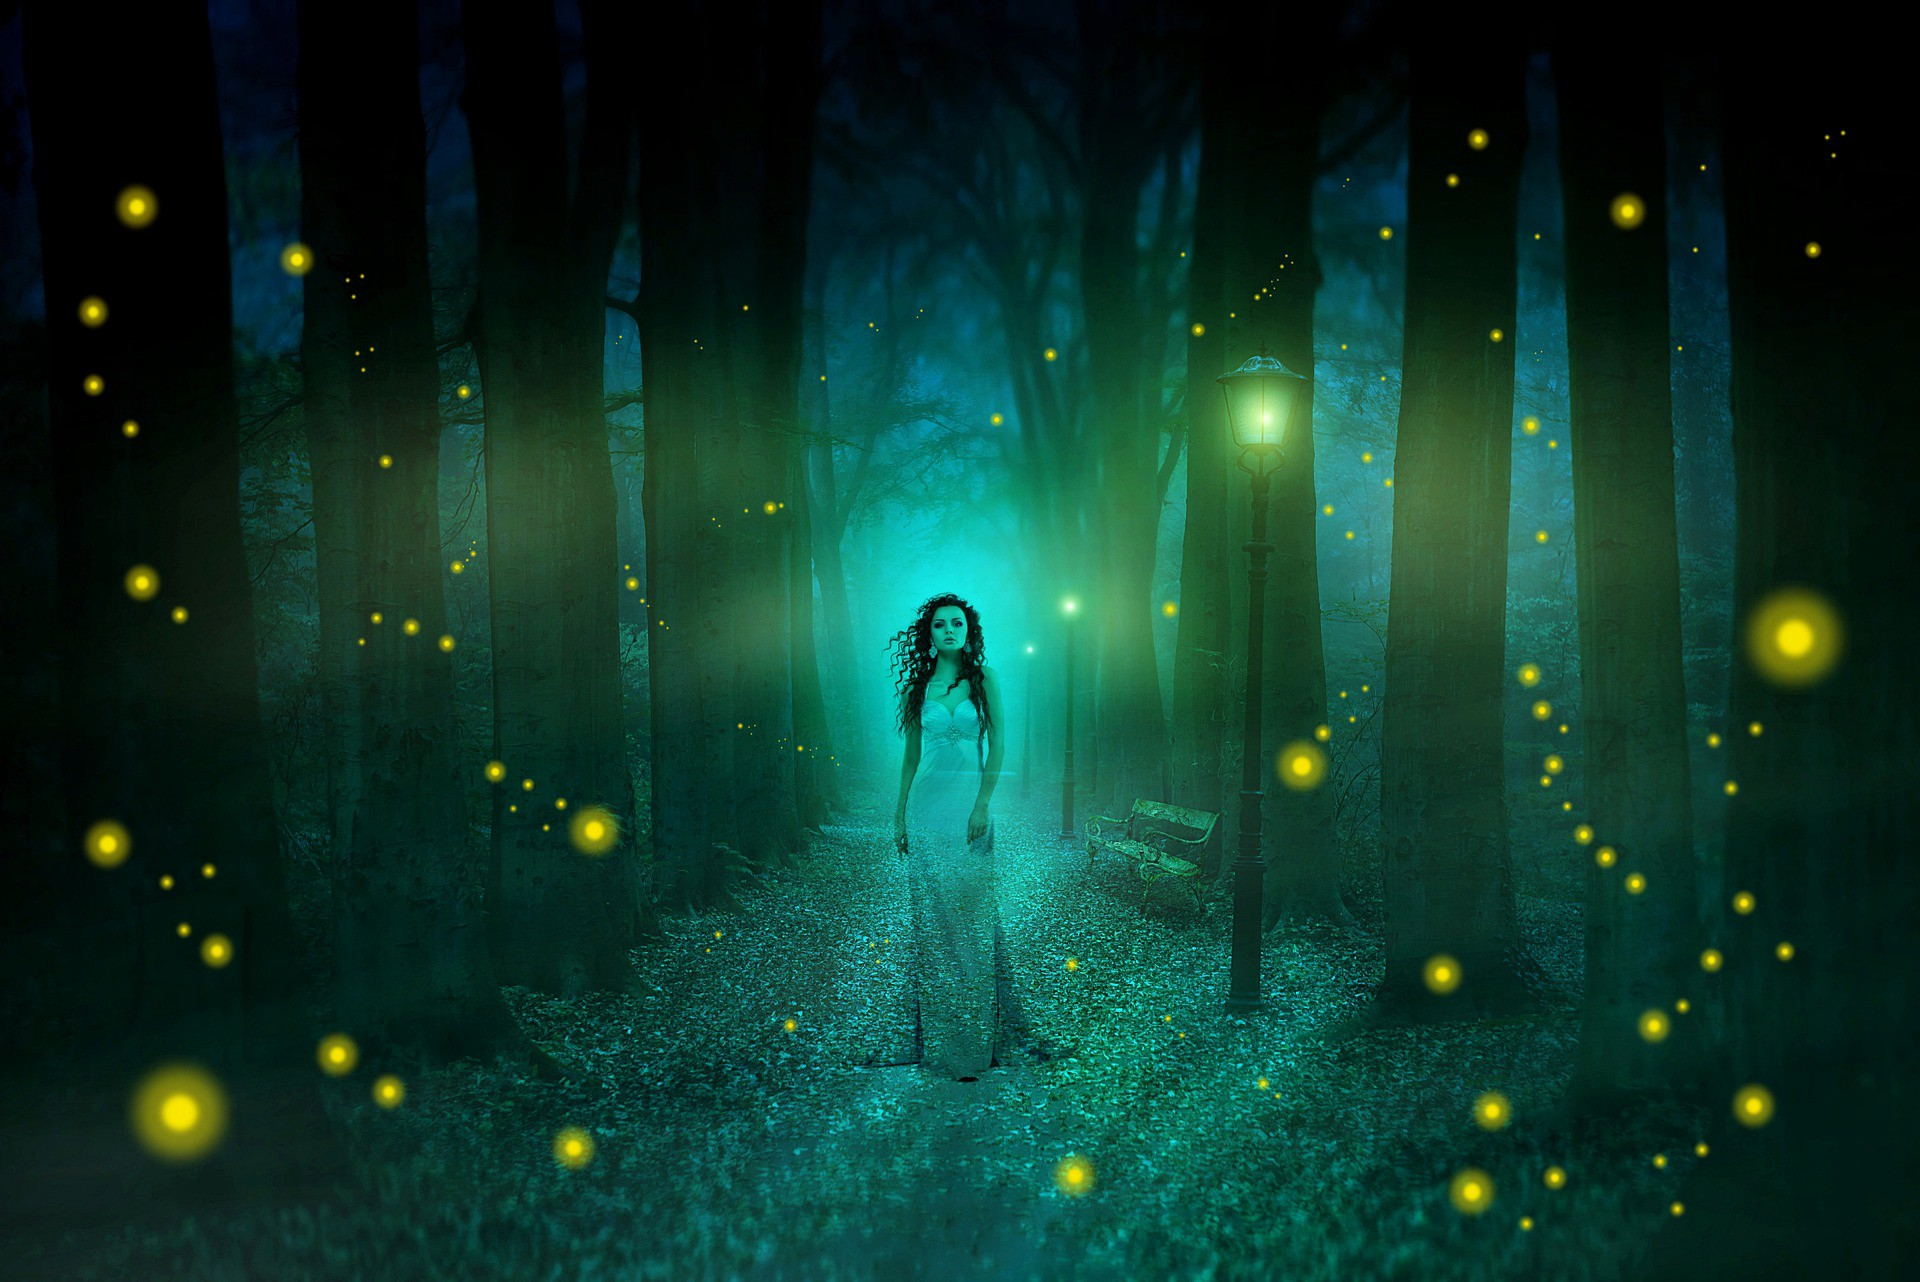 Ethereal woman in woodland at night, lit with fireflies